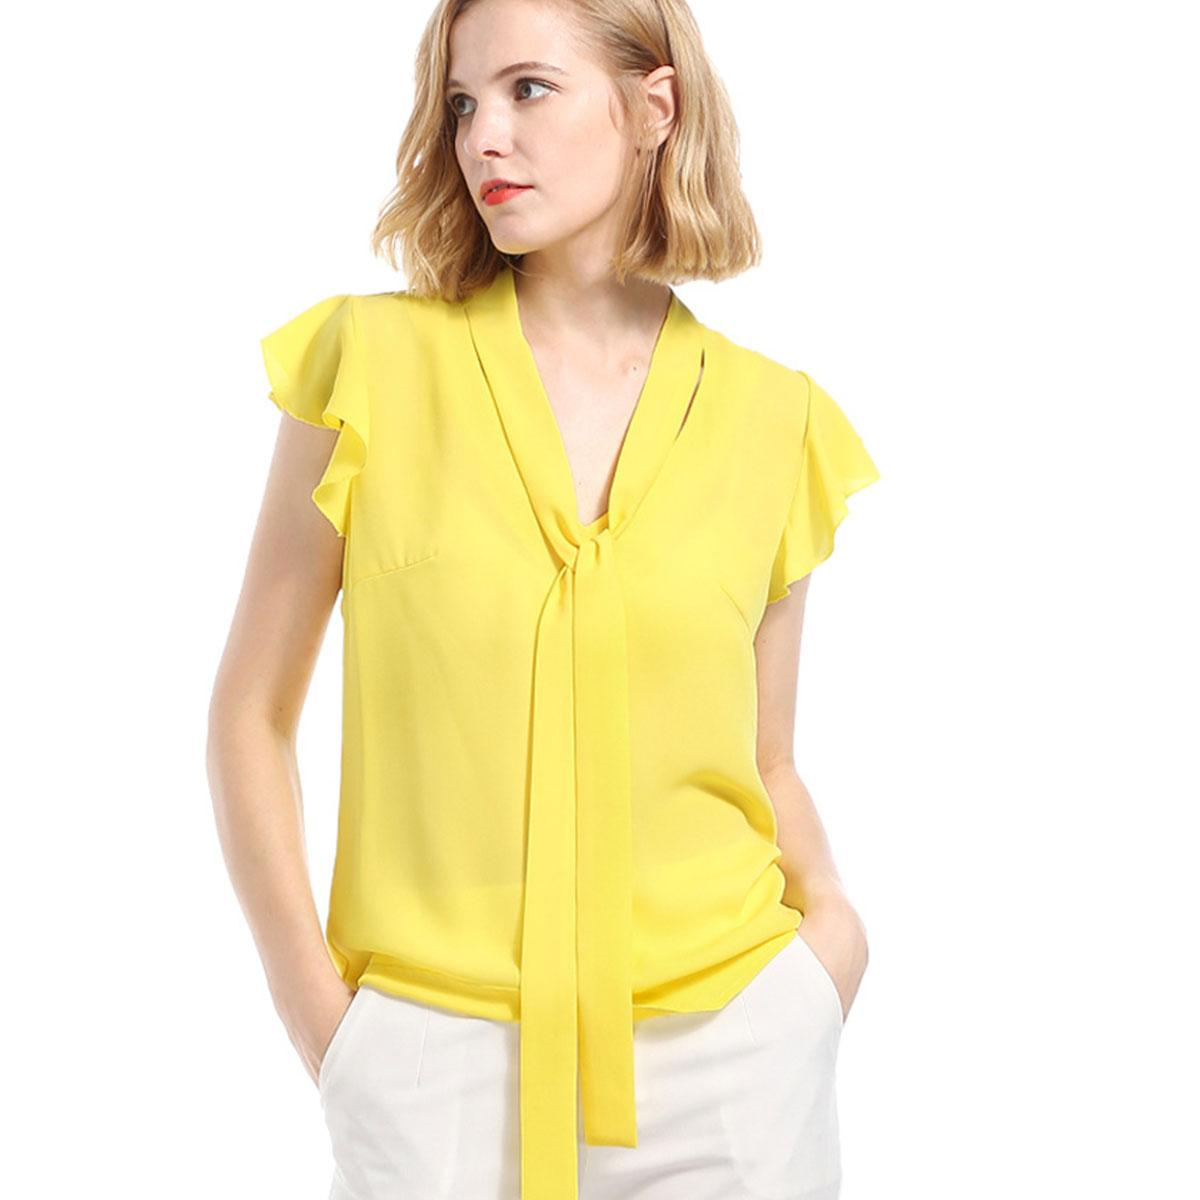 91e43ca2582 2018 Summer Women Casual Yellow Chiffon V Neck Tee Shirt Sleeveless Ruffle  Blouse Bow Sash Fit Beach Bandage Top